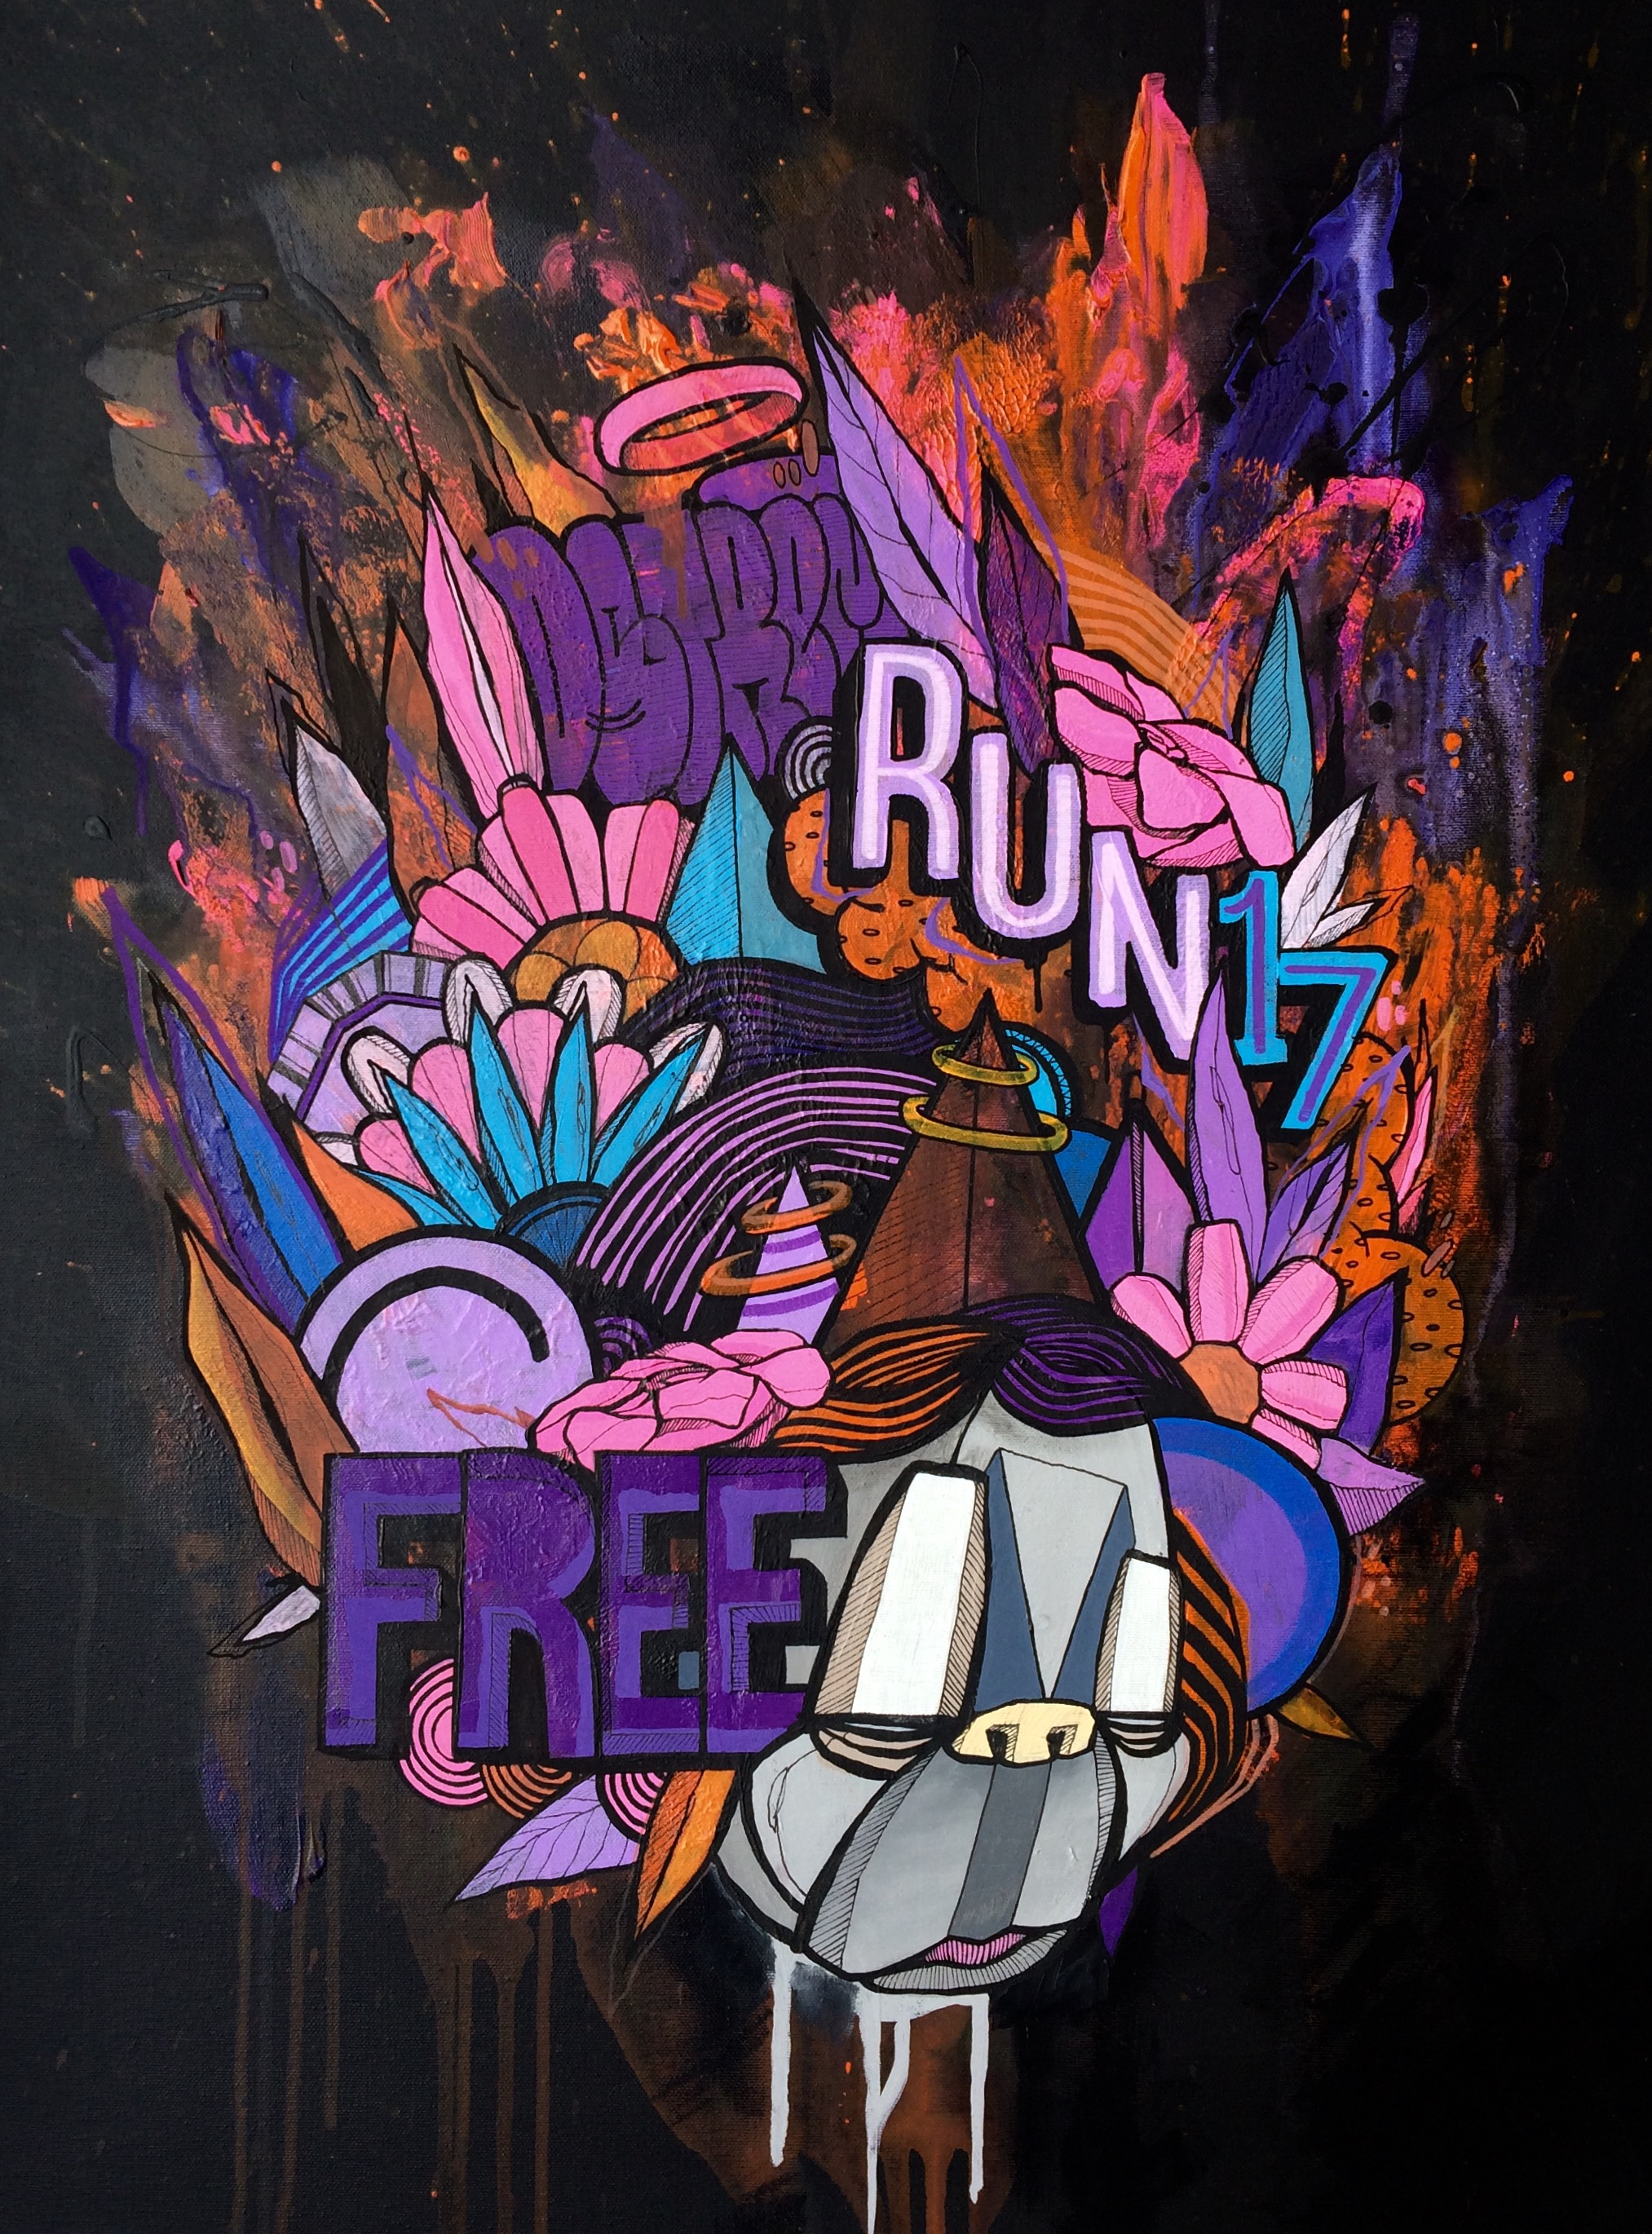 Visual Artwork: Run Free by artist and creator Atle Østrem